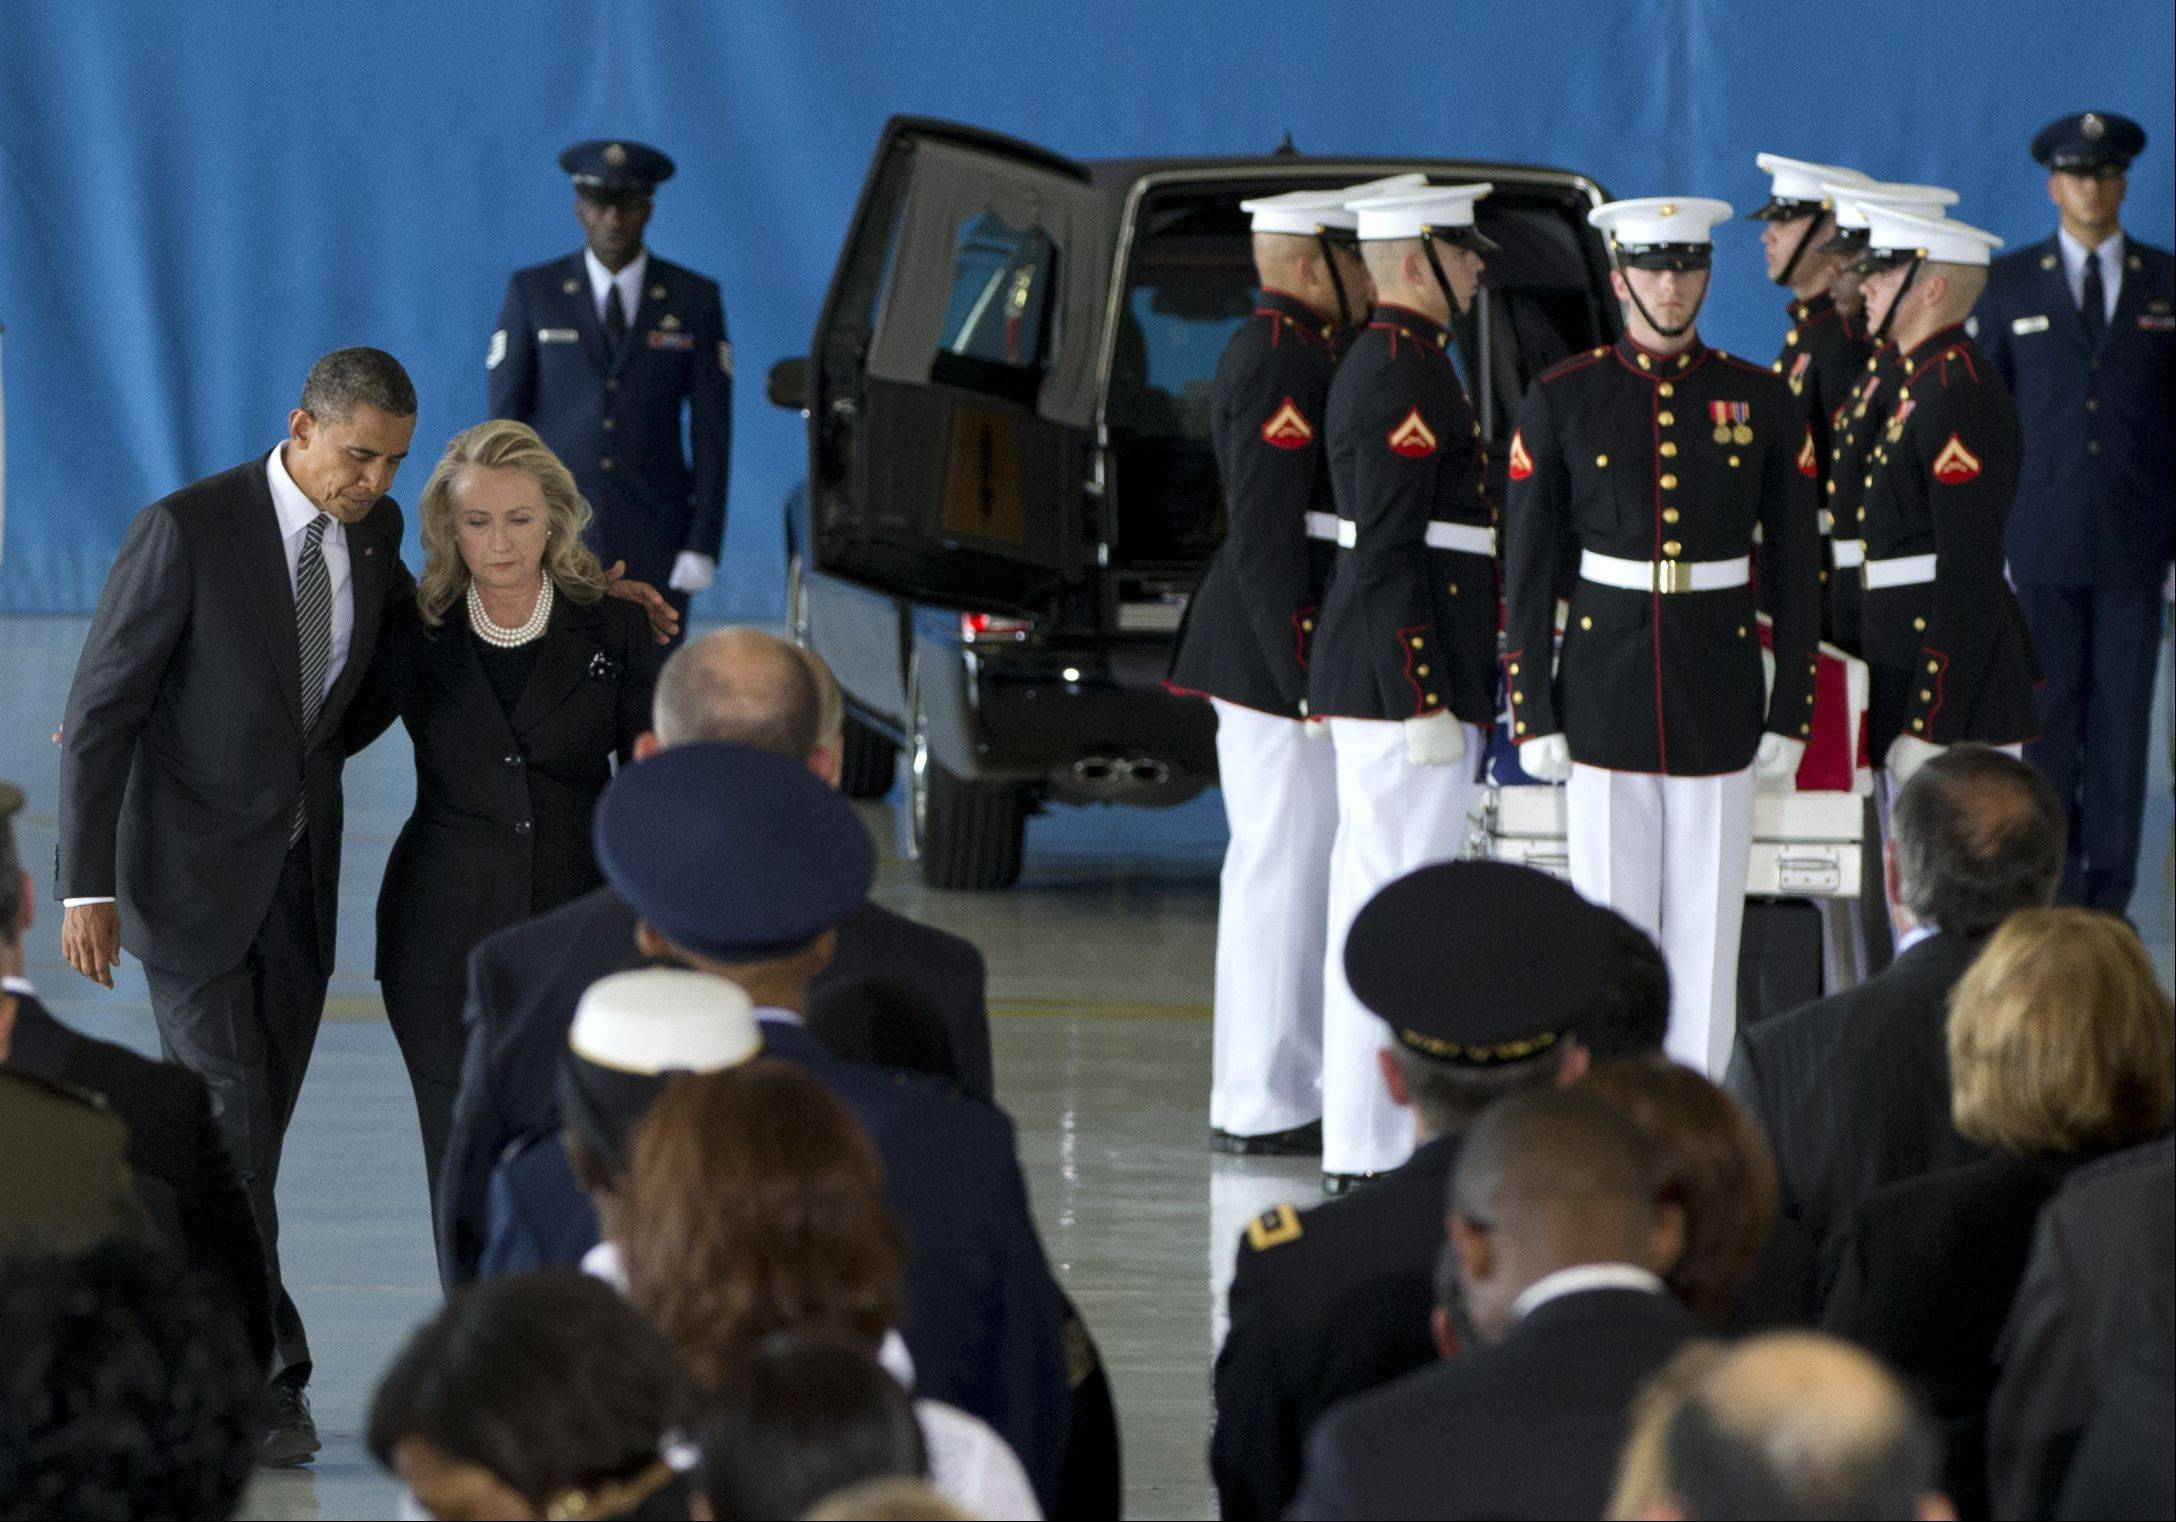 President Barack Obama and Secretary of State Hillary Rodham Clinton walk back to their seats Friday after speaking during the Transfer of Remains Ceremony at Andrews Air Force Base, Md.